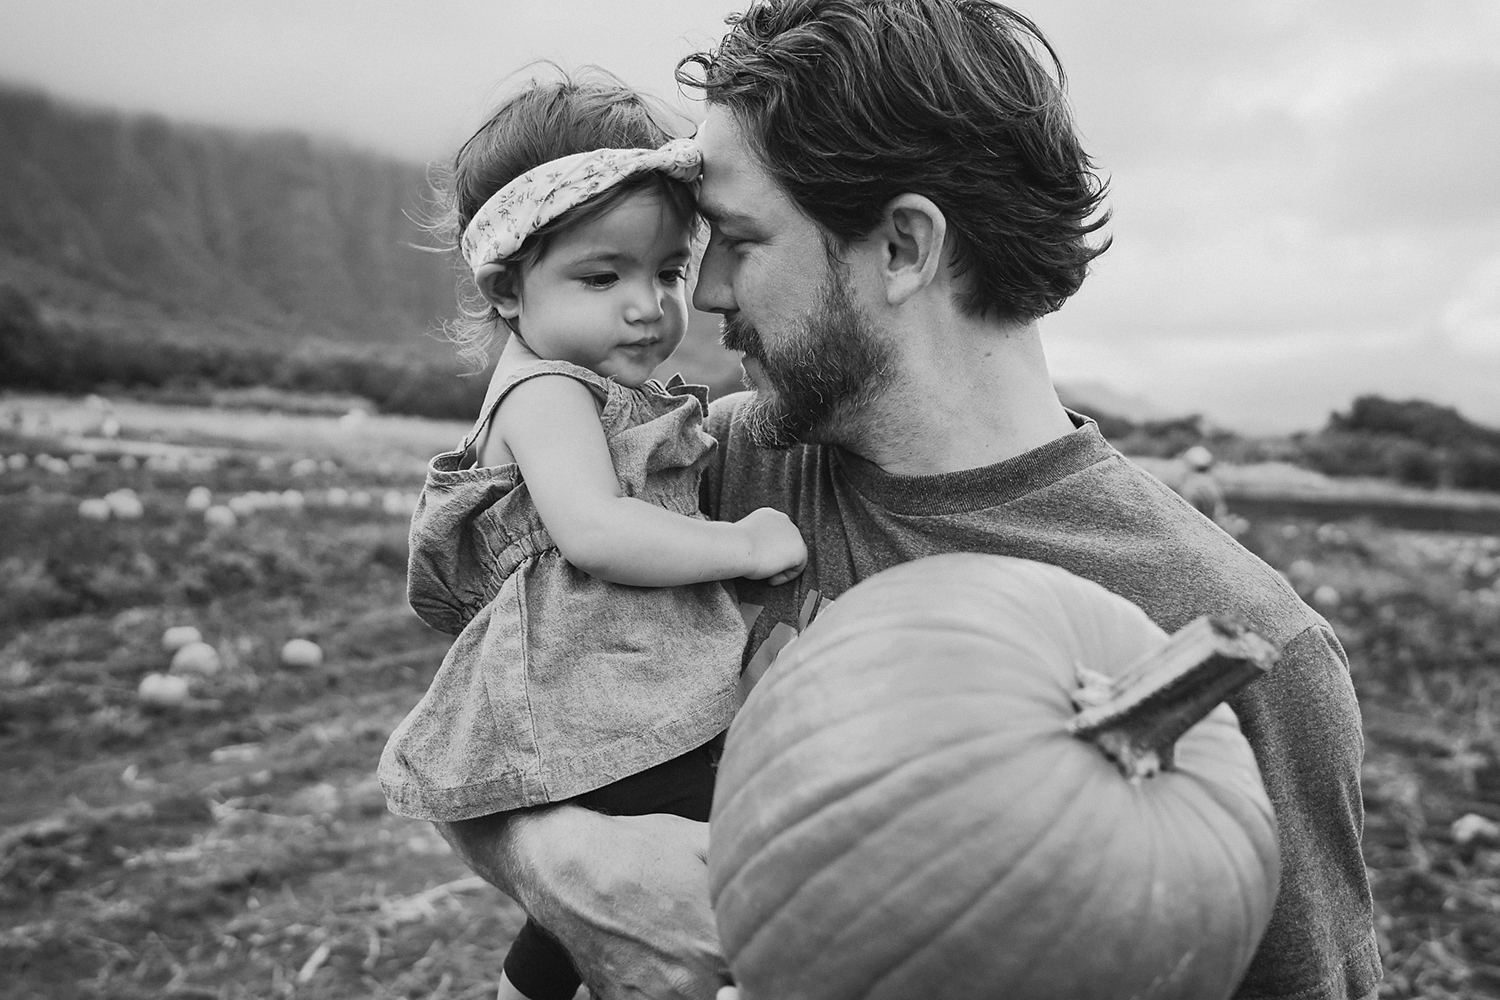 2018 Pumpkin Patch - 097 Edited BW Copy.jpg